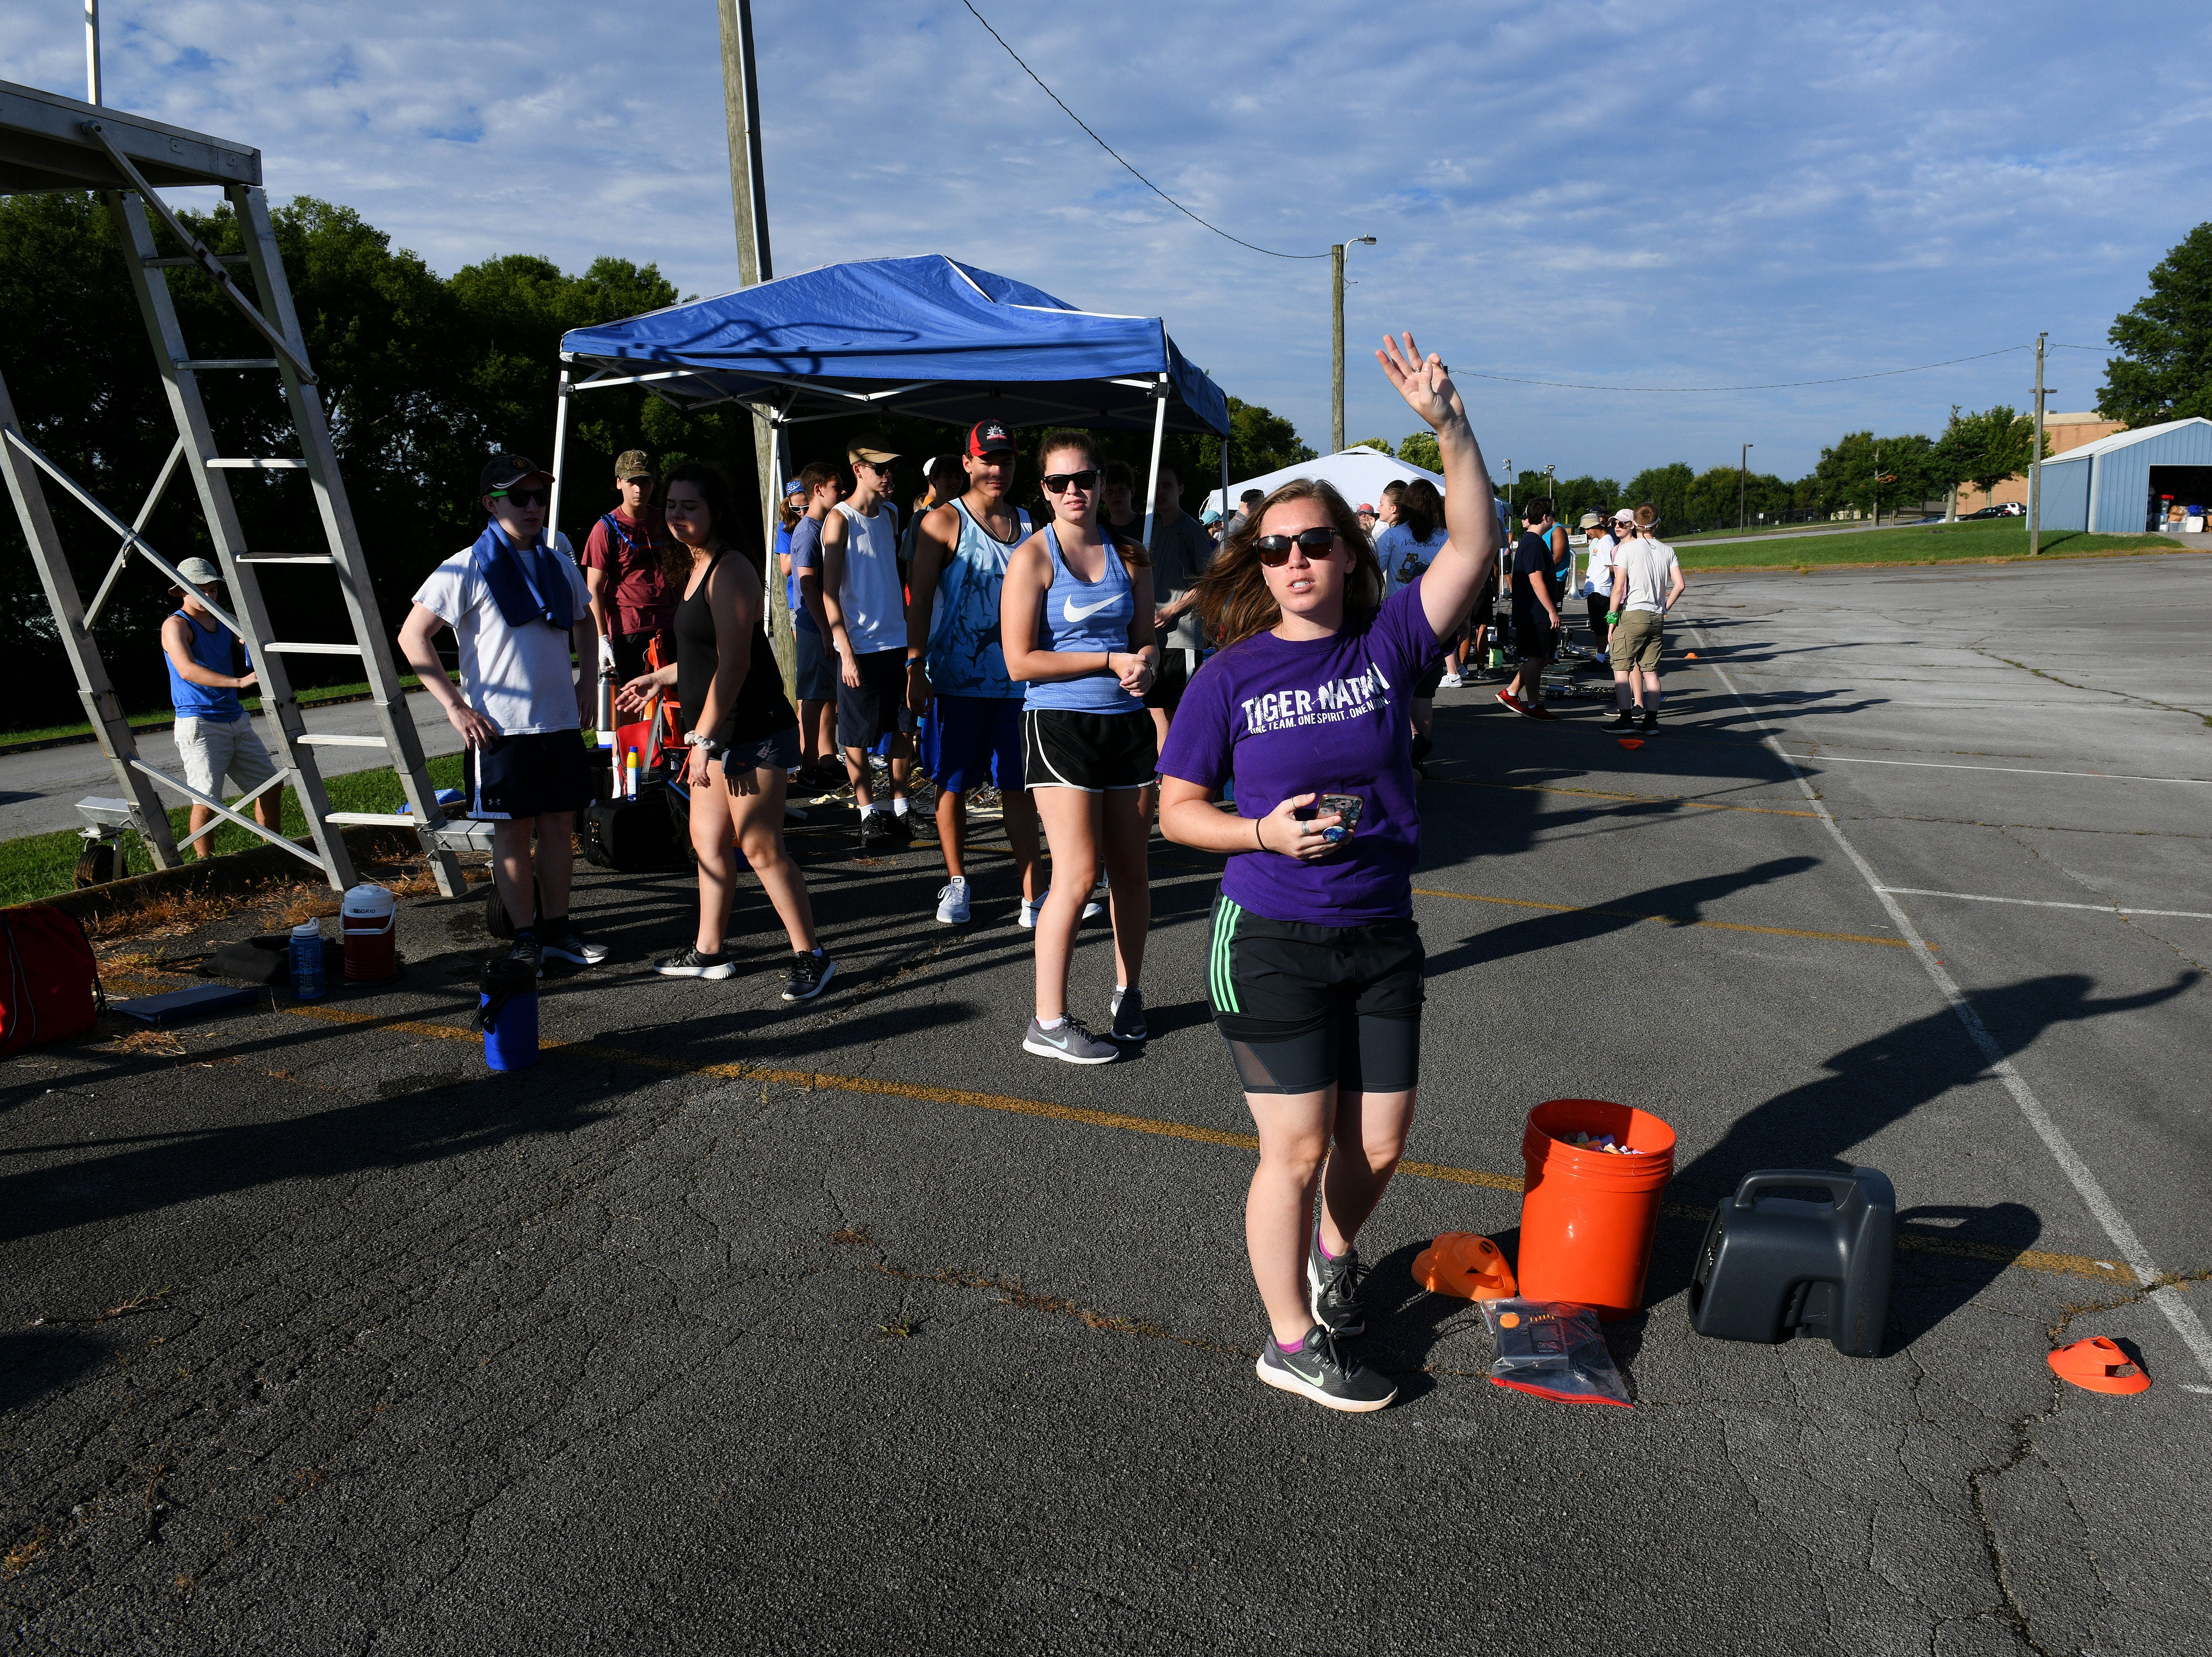 Assistant director Elizabeth Gott signals 3 minutes to start Farragut High School band camp Wednesday, July 18, 2018 on a parking lot at the high school.